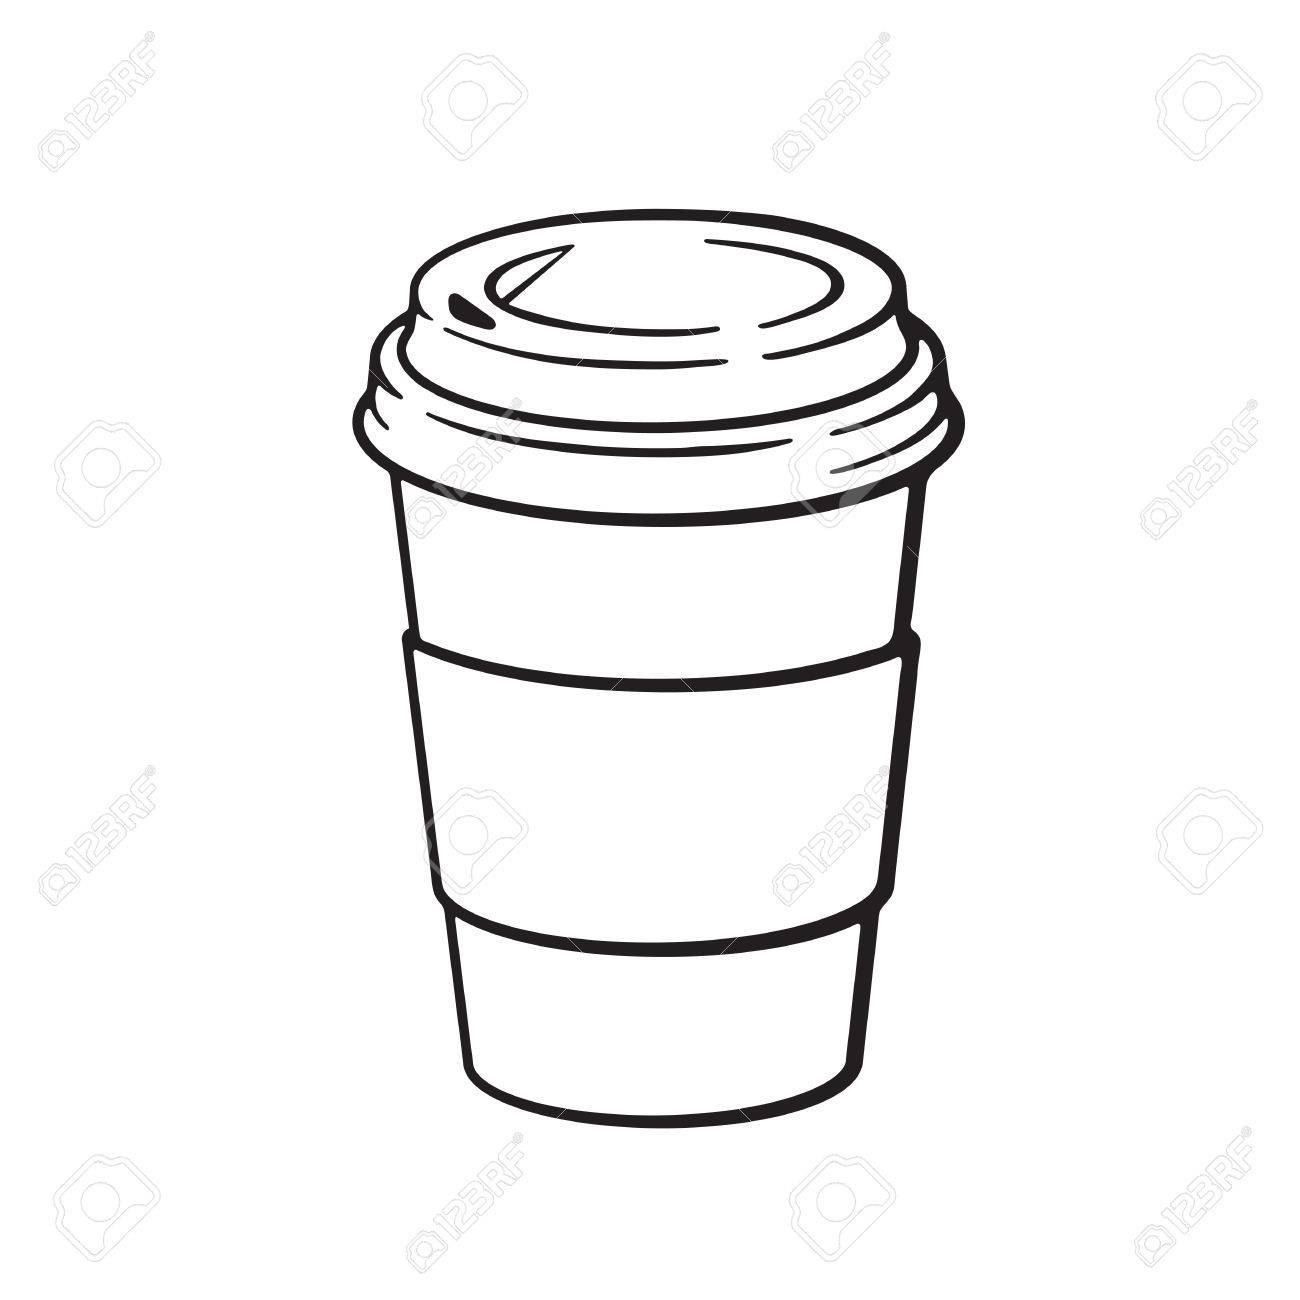 Best Coffee Cup To Keep Coffee Hot >> Coffe Cup Drawing at GetDrawings.com | Free for personal use Coffe Cup Drawing of your choice